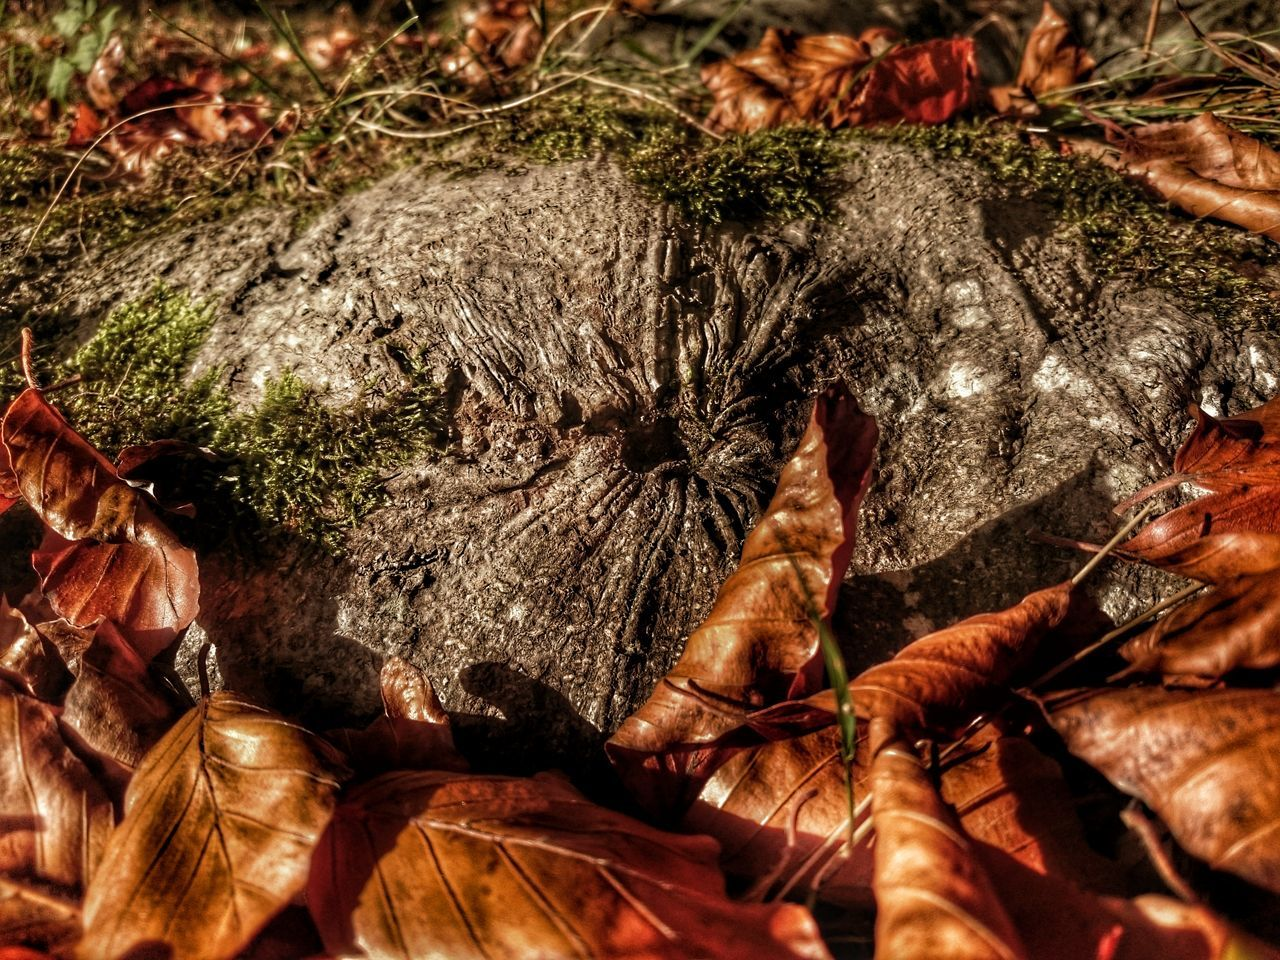 Nature Beauty In Nature Sunlight, Shades And Shadows Wintertime Fallen Leaves Country Walks Fallen Leaf Hole Beechleaves Golden Moments  RootPorn Beech Leaves Beechwood Beech Trees Beechtree Exploring Nature_collection Nature's Diversities Natures Colours